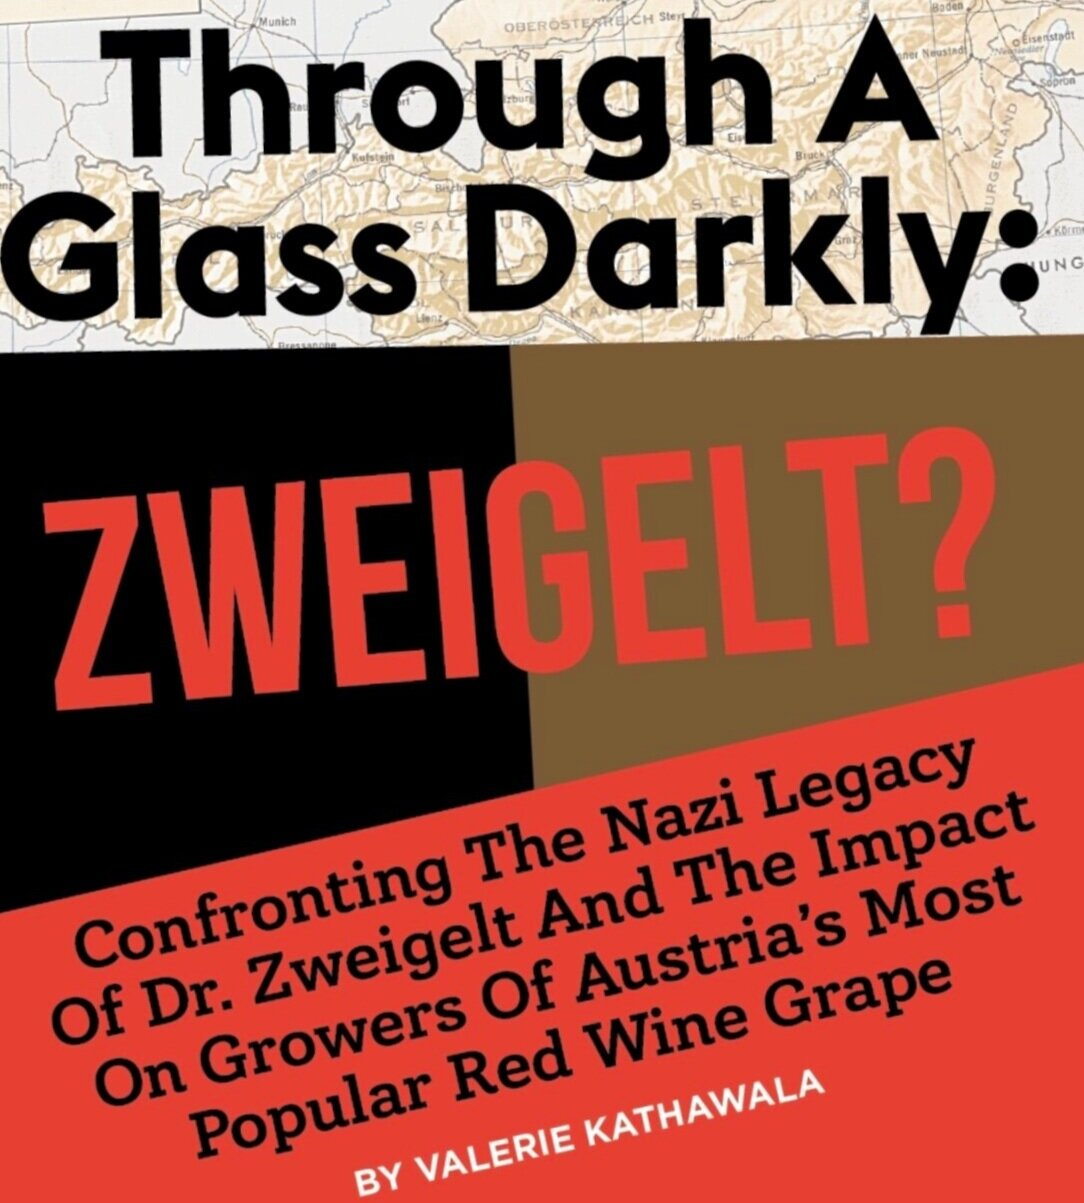 Through a glass darkly: Zweigelt? - Confronting the Nazi legacy of Dr. Zweigelt and the impact on growers of Austria's most popular red wine grape. September 2019